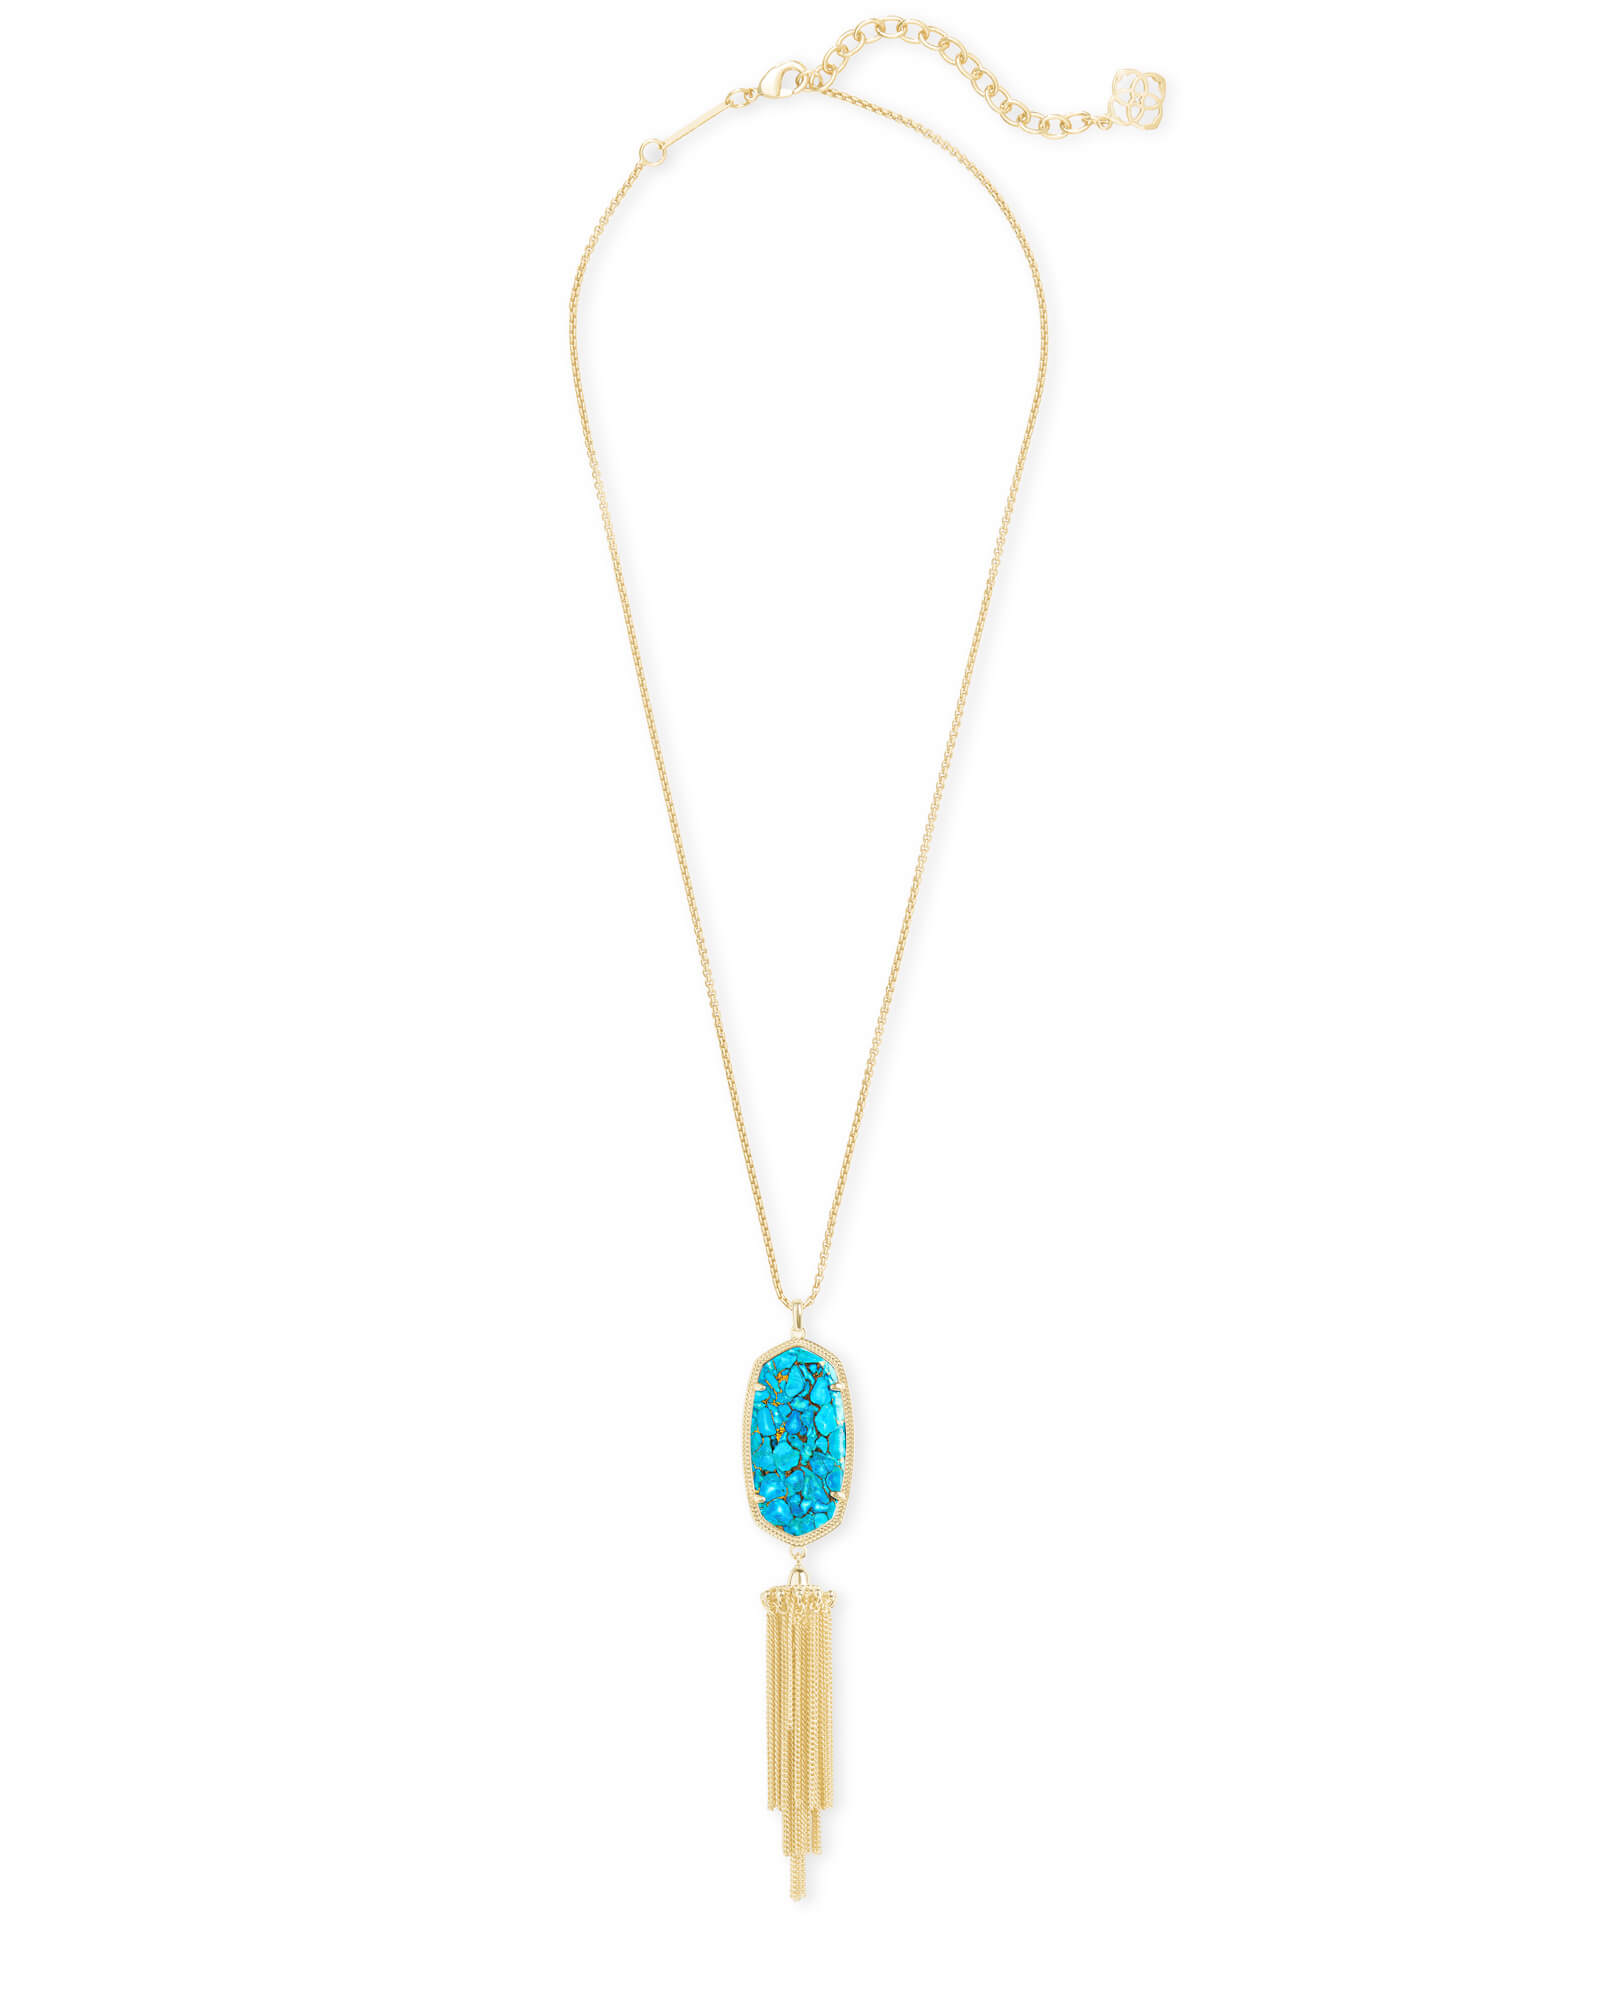 Rayne Long Pendant Necklace in Bronze Veined Turquoise Magnesite